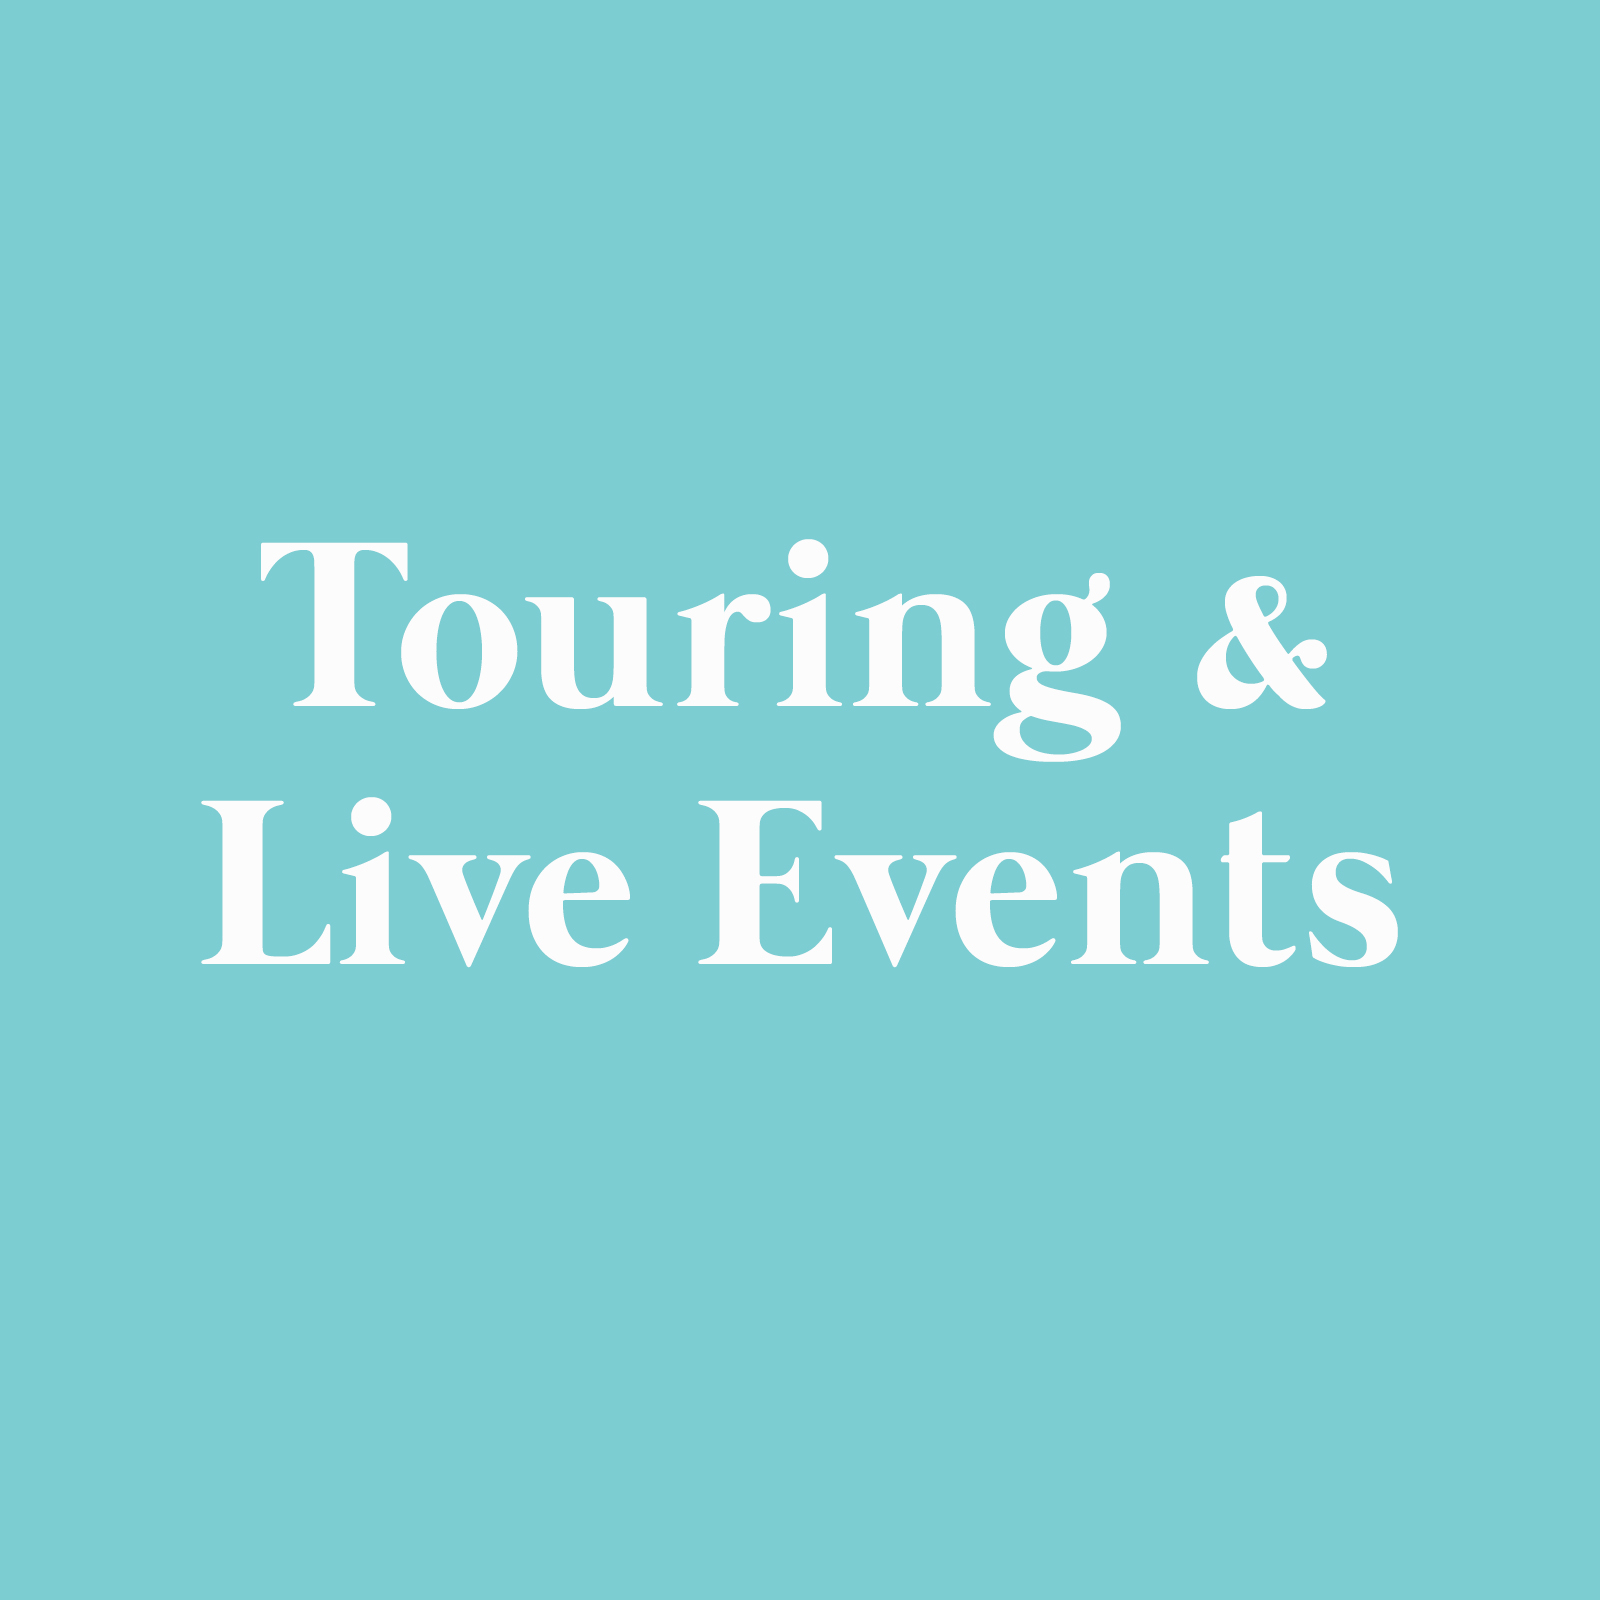 Touring & Live Events